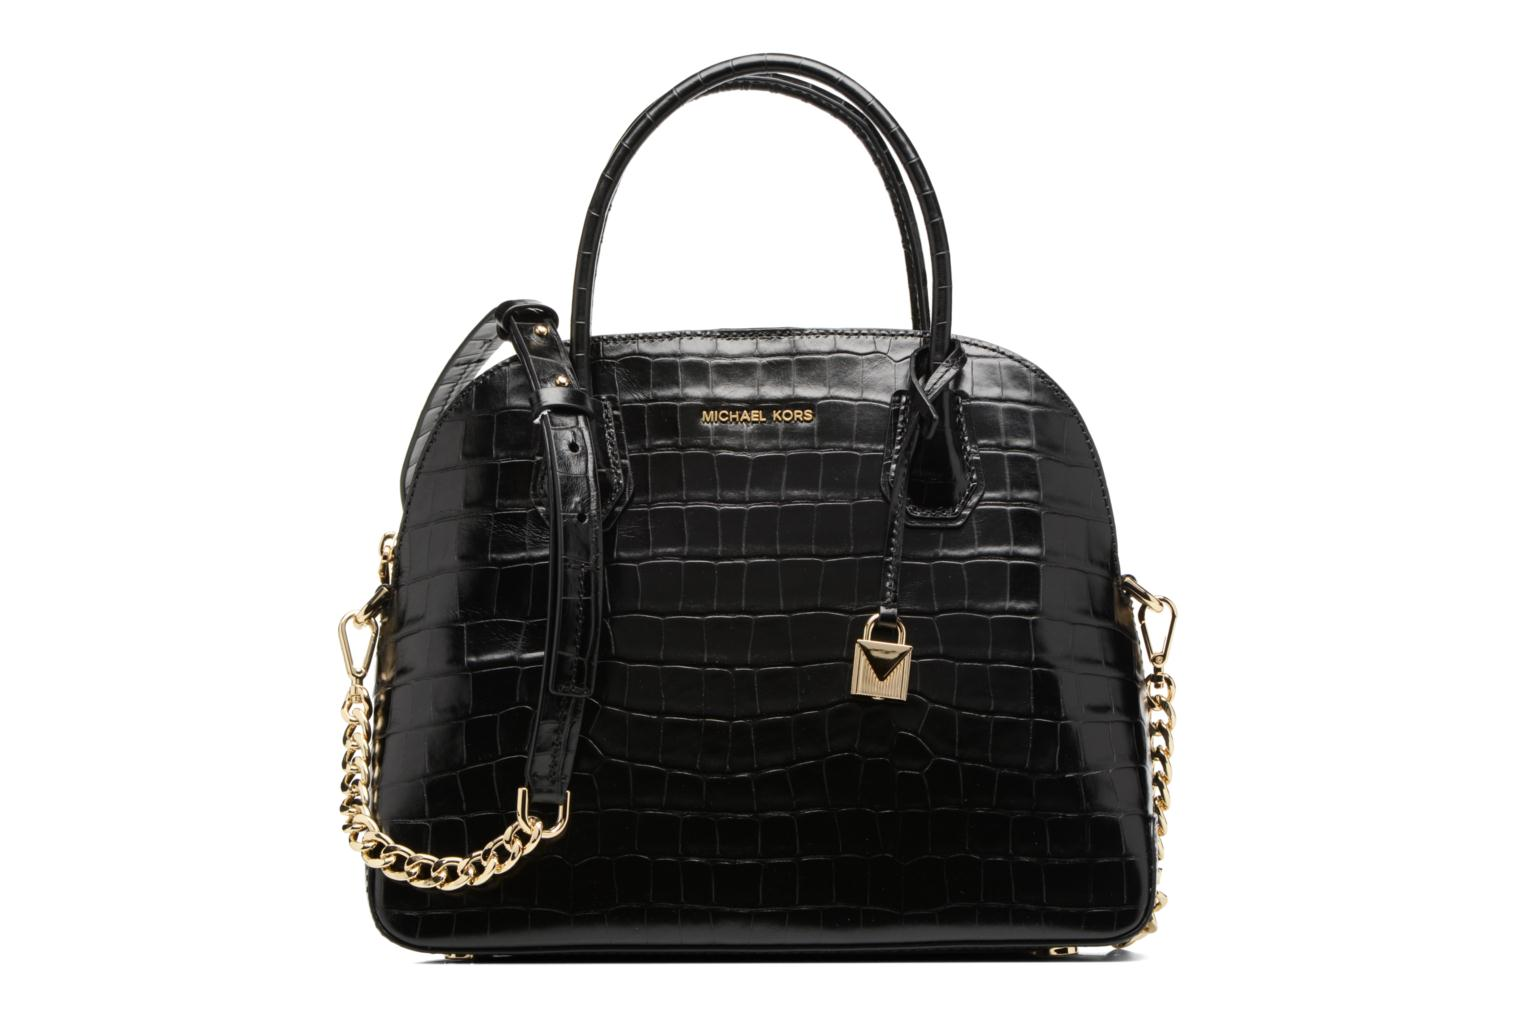 MERCER LG DOME SATCHEL 001 black